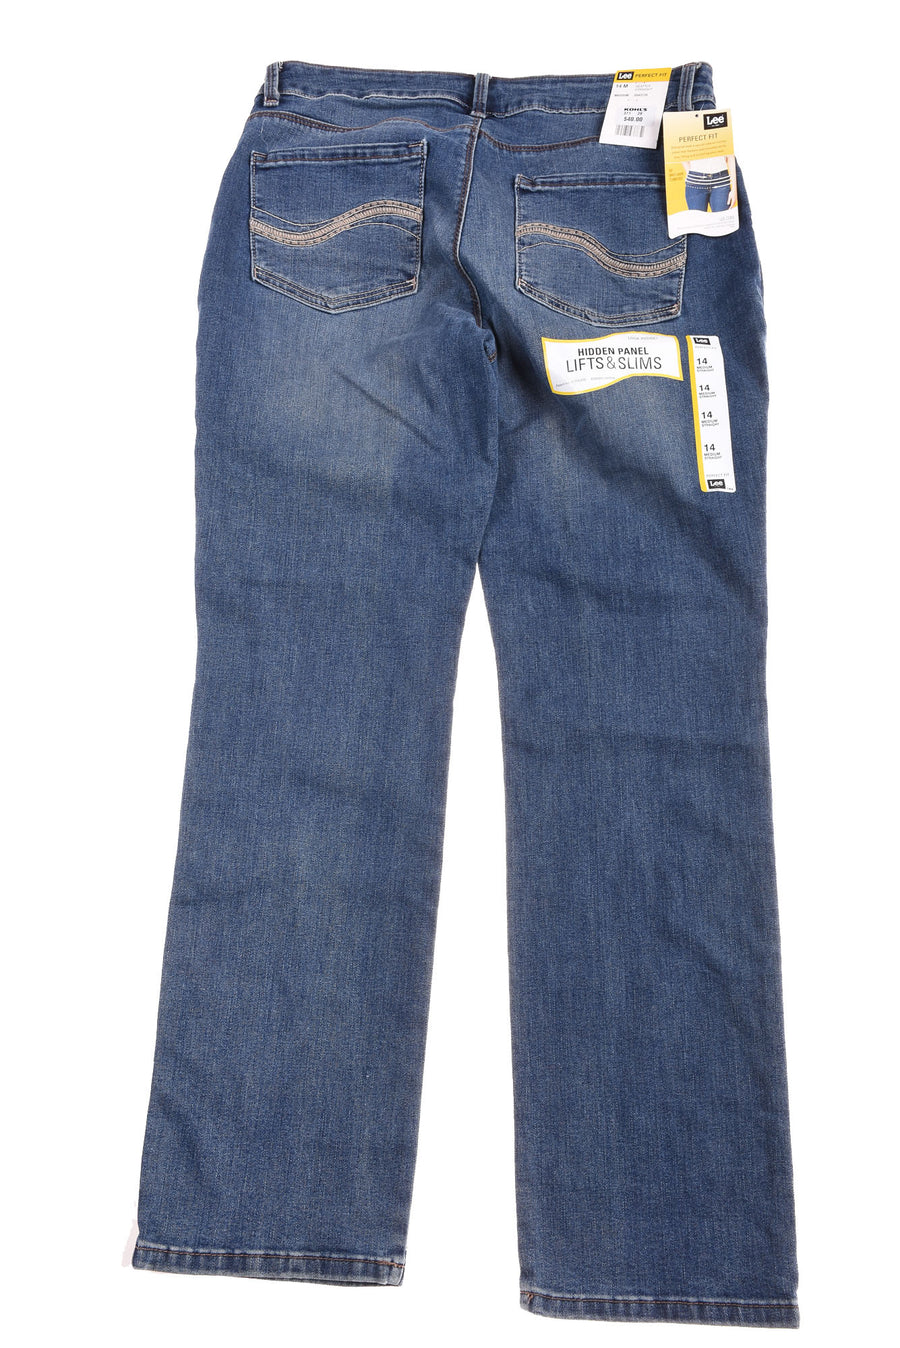 NEW Lee Women's Jeans 14 Blue